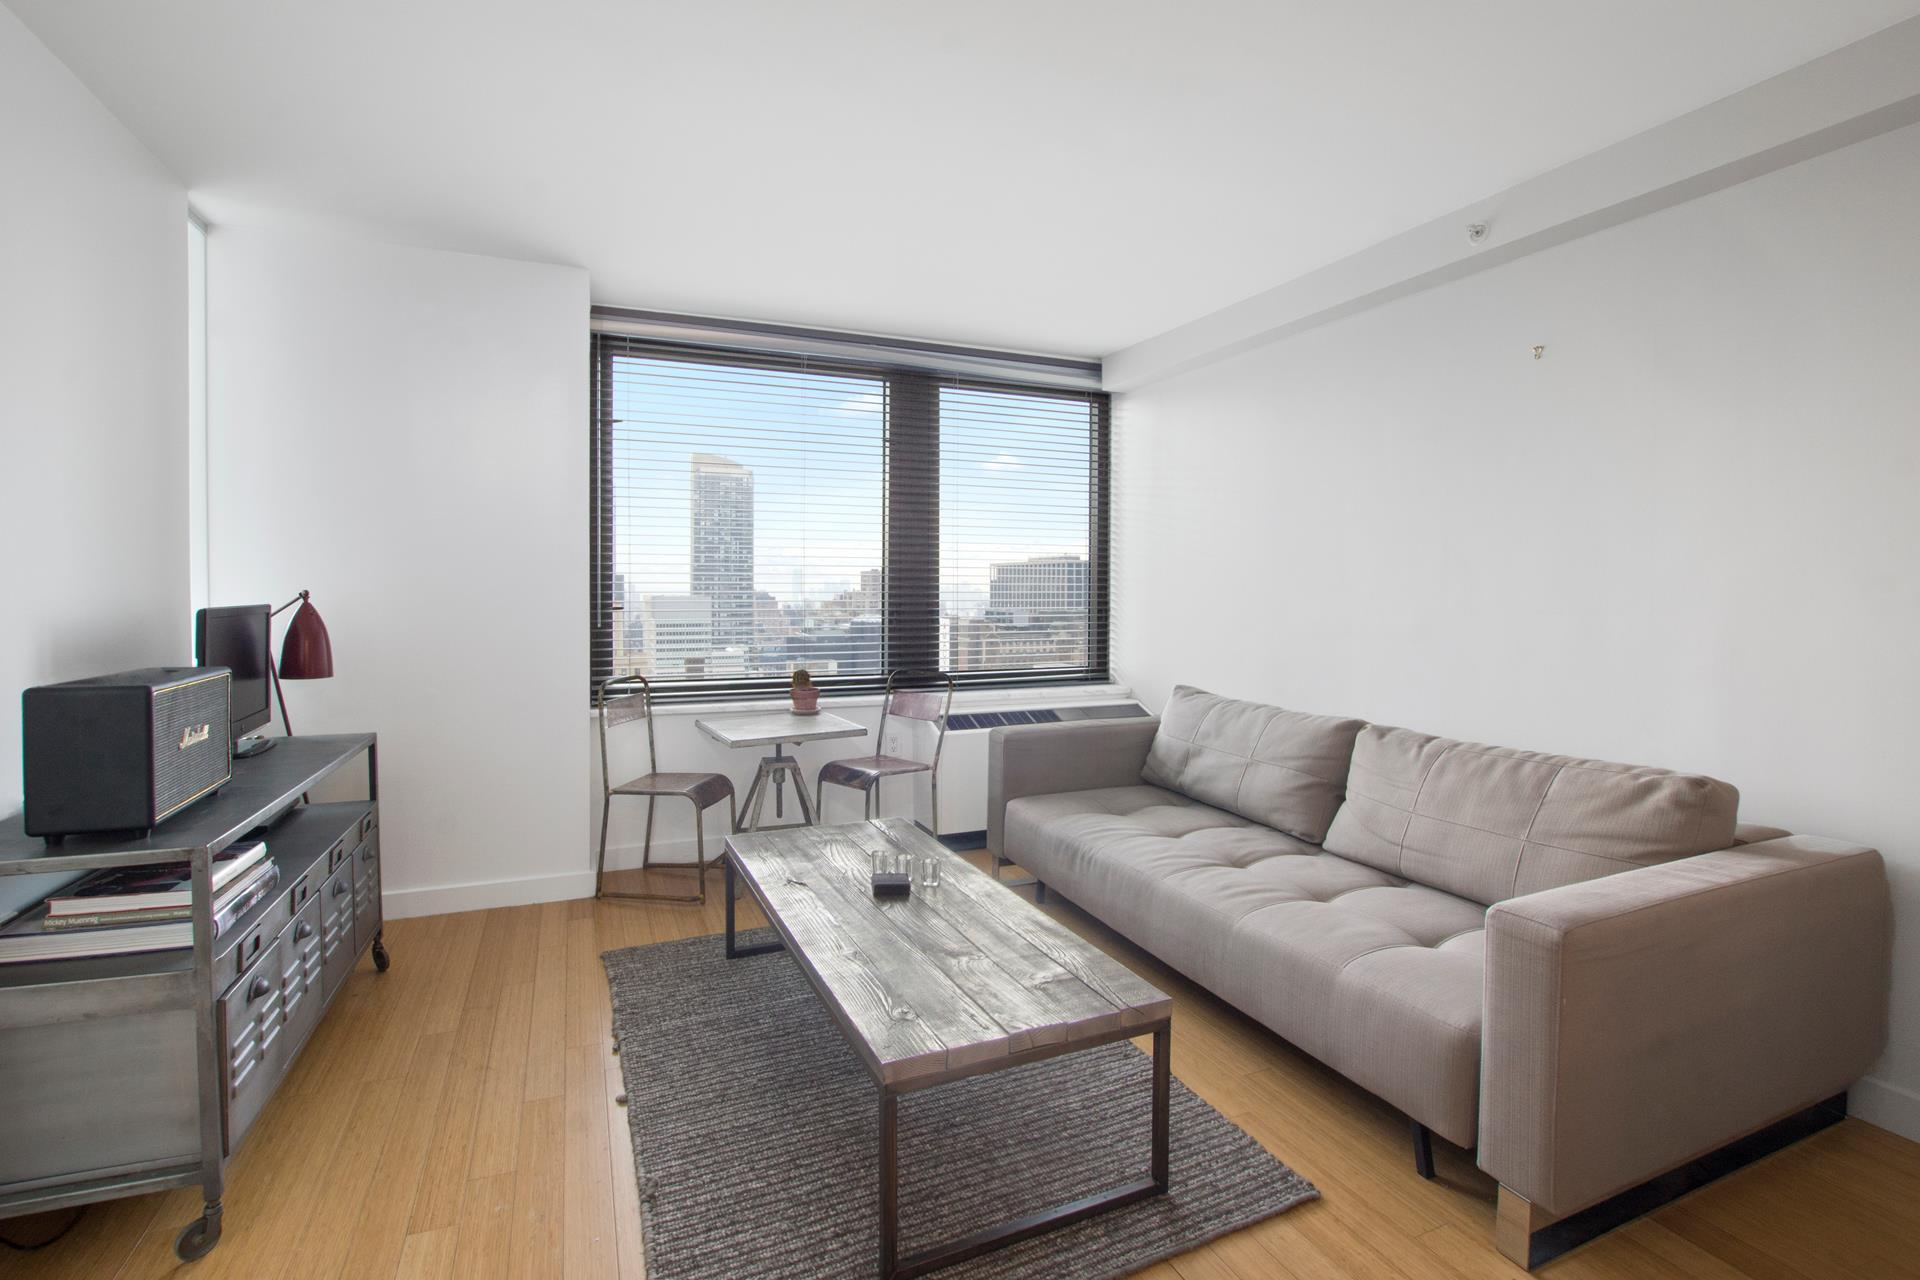 Private showings can be scheduled directly with the listing brokers 7 days a week!    PRIVATE LUXURY CONDO LIVING JUST STEPS FROM BRYANT PARK!    This impeccably designed 1 bedroom, 1 bathroom has tons of natural sun light due to its spectacular breathtaking City Skyline. The apartment features bamboo floors throughout, translucent Italian ice-grass doors, limestone thresholds and a stunning open kitchen   with top of the line stainless steel appliances, polished white marble countertops & oak cabinetry. It also has a spa-like pristine bathroom which has an ivory alabastro porcelain tile floor, zuma collection square tub with watermark hardware.    Bryant Park Towers is located between 7th & 6th avenue and is just a few blocks away from the 1/2/3/4/5/6/7/S/N/Q/R/W/B/D/F/M subways & QM1, QM3, QM4, QM5, Q32, M42 buses.    Enjoy living in the heart of New York Citys Hot Spot where youll find great restaurants, museums, shopping, health clubs, movie theatres, libraries & much more This fabulous high-end condominium is even walking distance from the famous, sought-after & splendid   bryant park where one can enjoy the comfort of its quiet and relaxing lush gardens. You can have ALL that while being surrounded by the very best services and luxuries this city has to offer!    The amenities are: FREE Fitness Room, Laundry Room, Designer Lobby & Mail Room, Full-time Doorman, Concierge Services, Parking Garage & Live-in Superintendent.